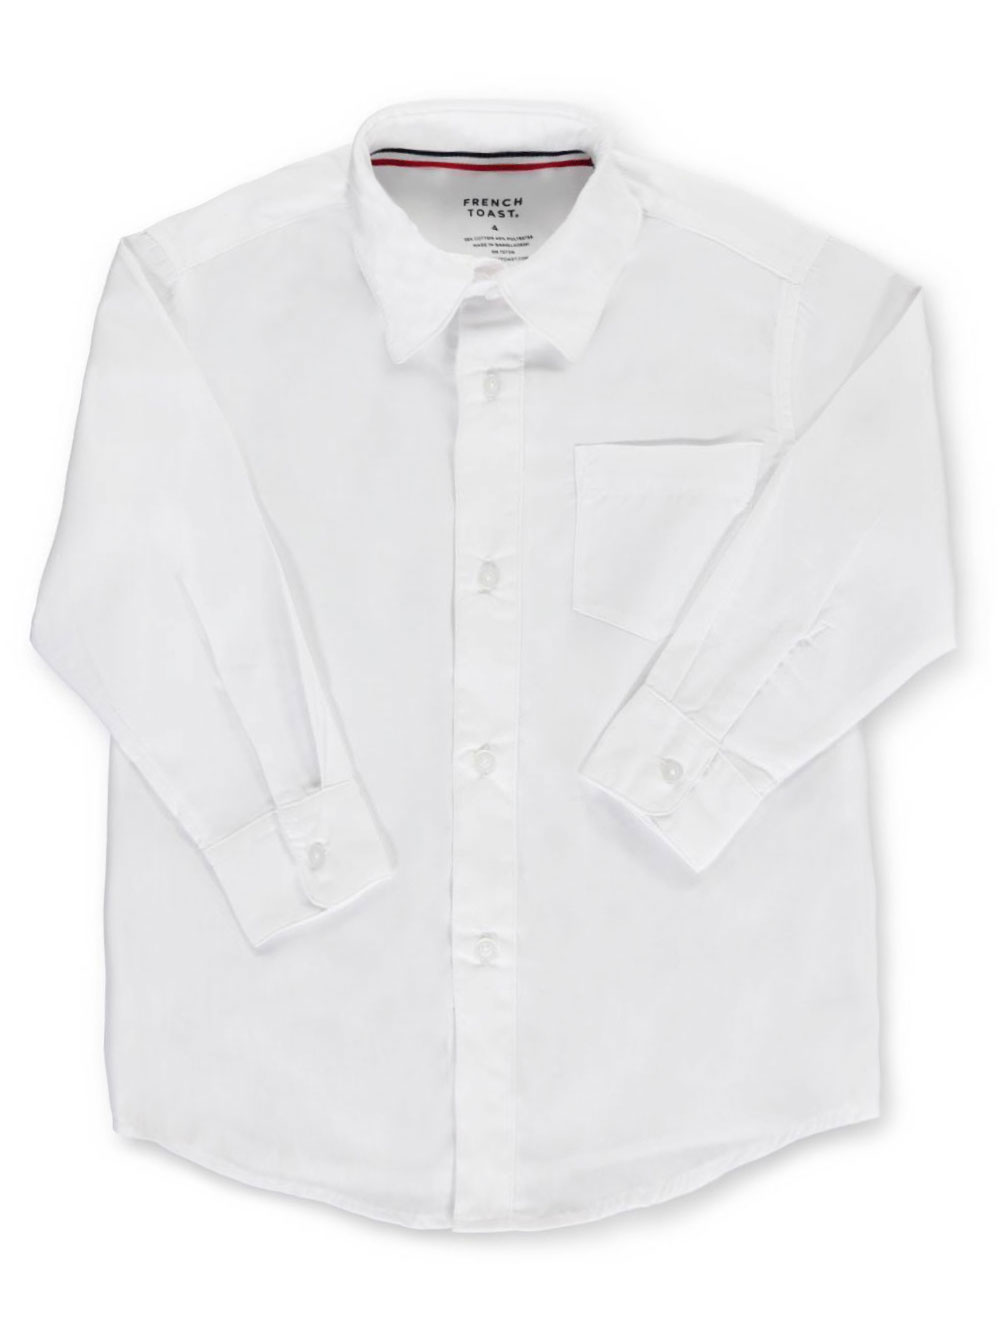 Image of French Toast Little Boys LS ButtonDown Shirt Sizes 4  7  white 7